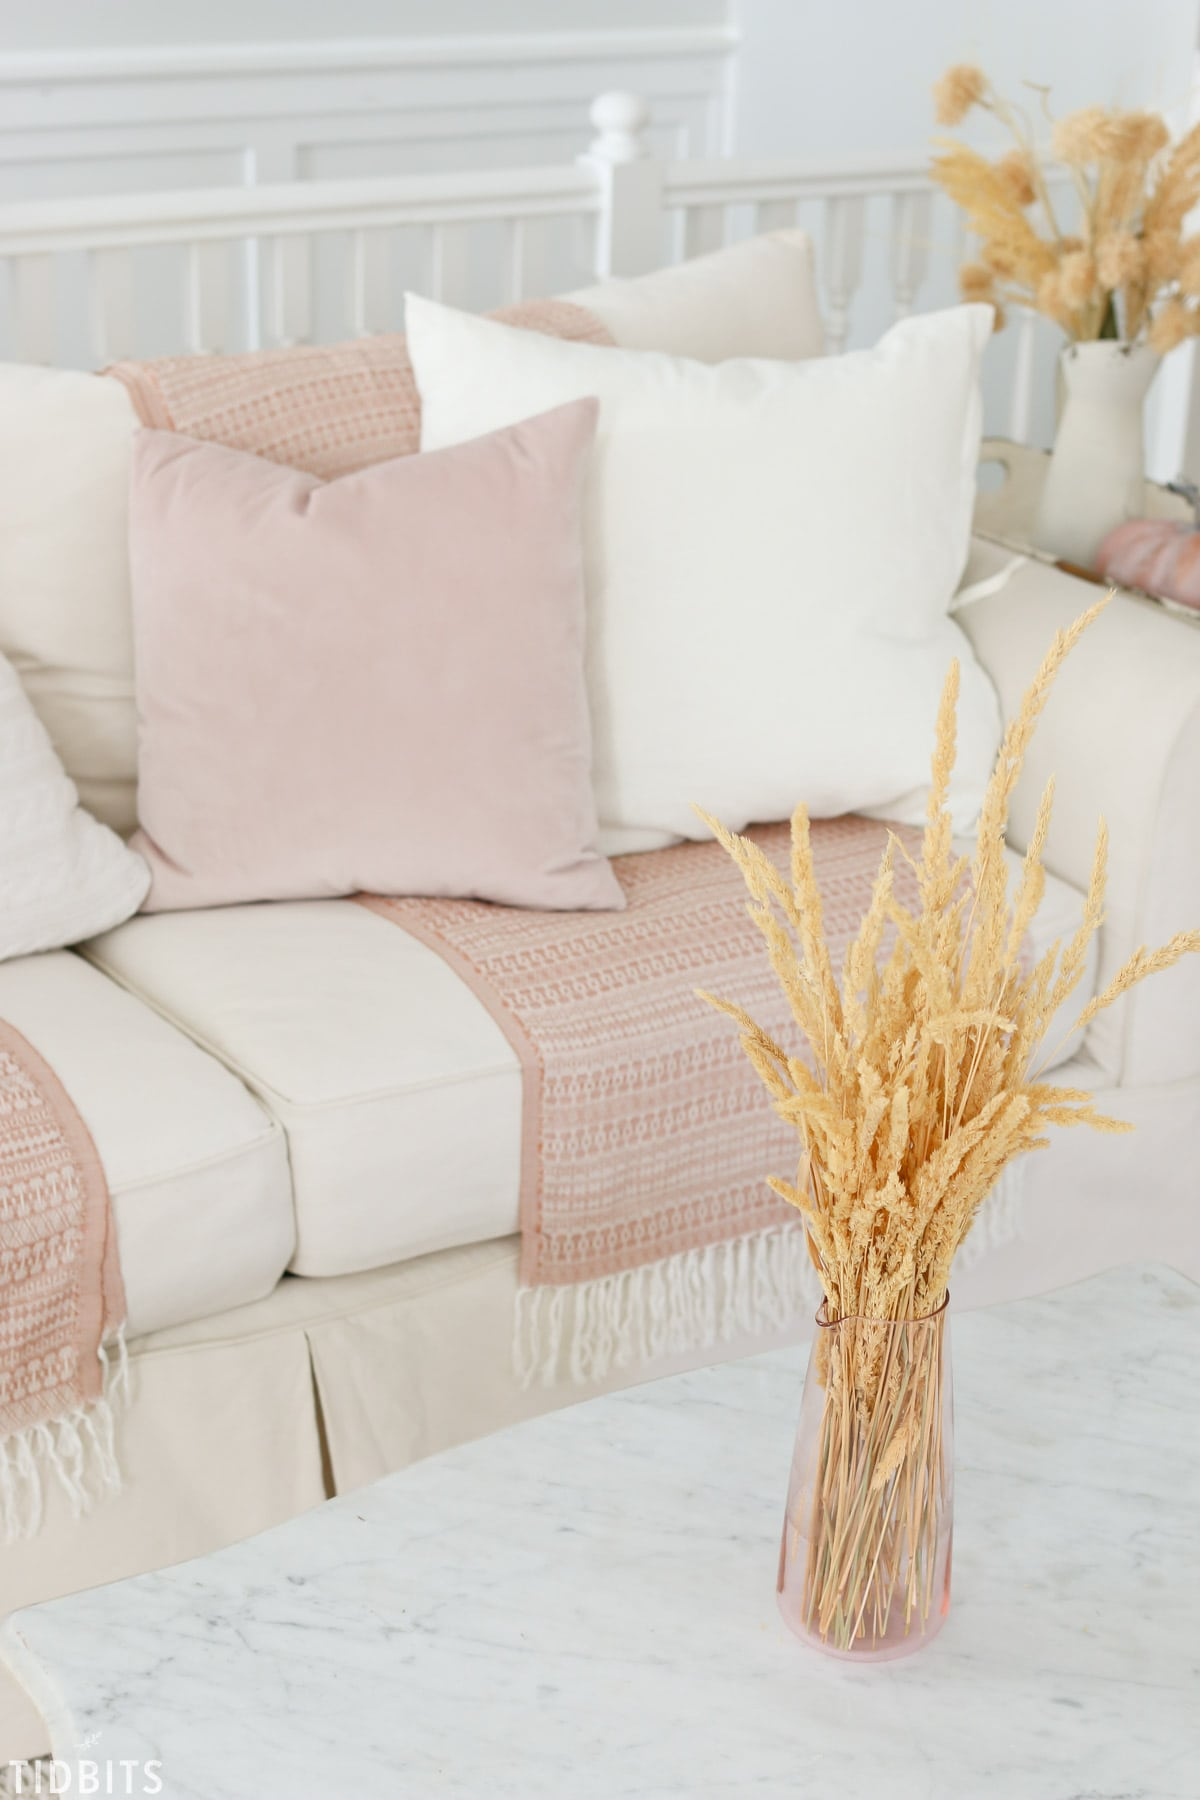 TIDBITS Fall Home Tour | Living Room. What small seasonal changes you can do when you don't feel like decorating.